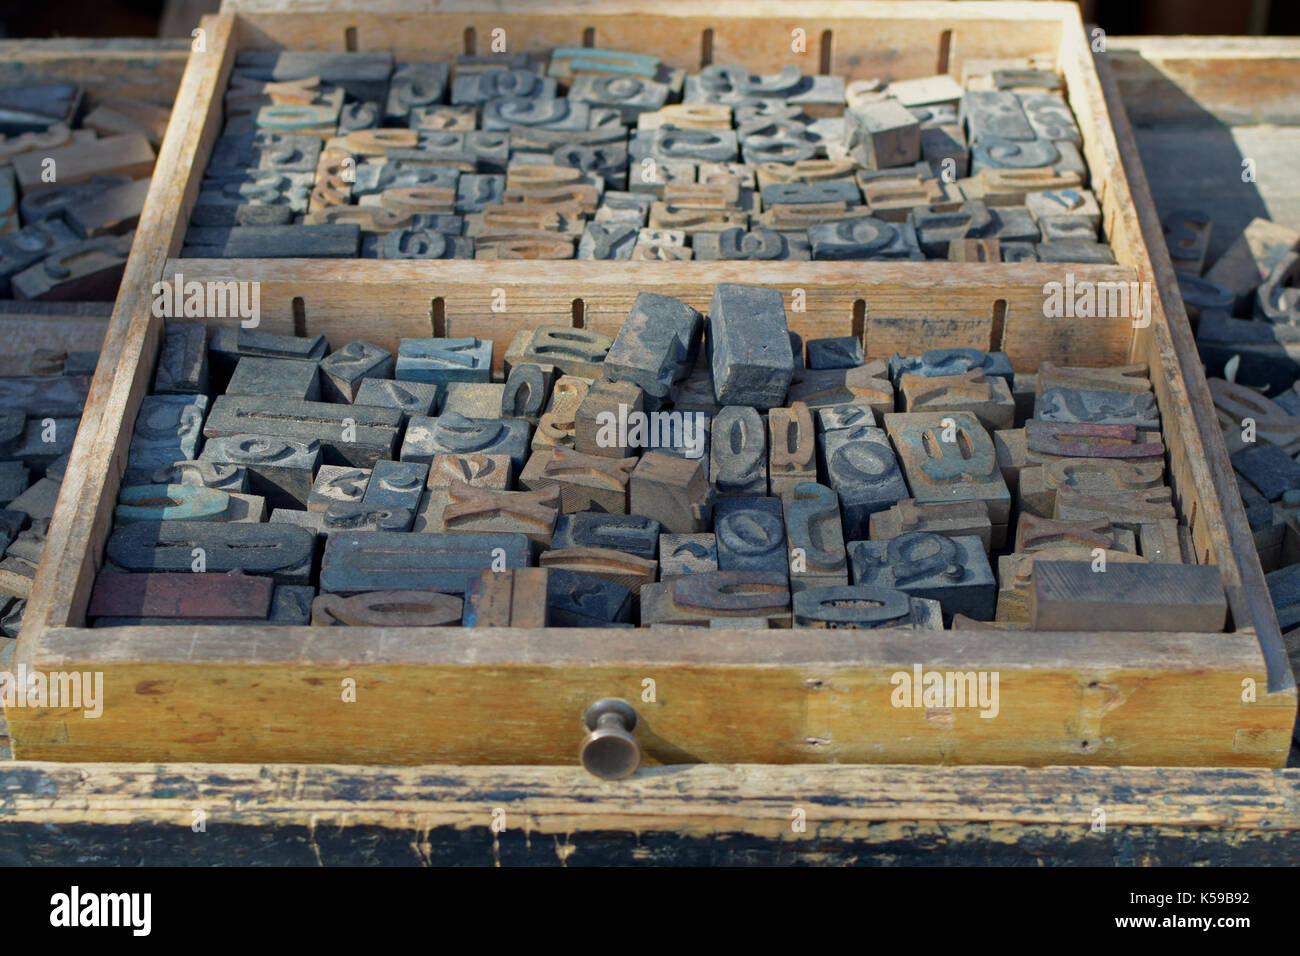 Box of antique wooden letters printing blocks letterpress type set. Abstract typography background. - Stock Image